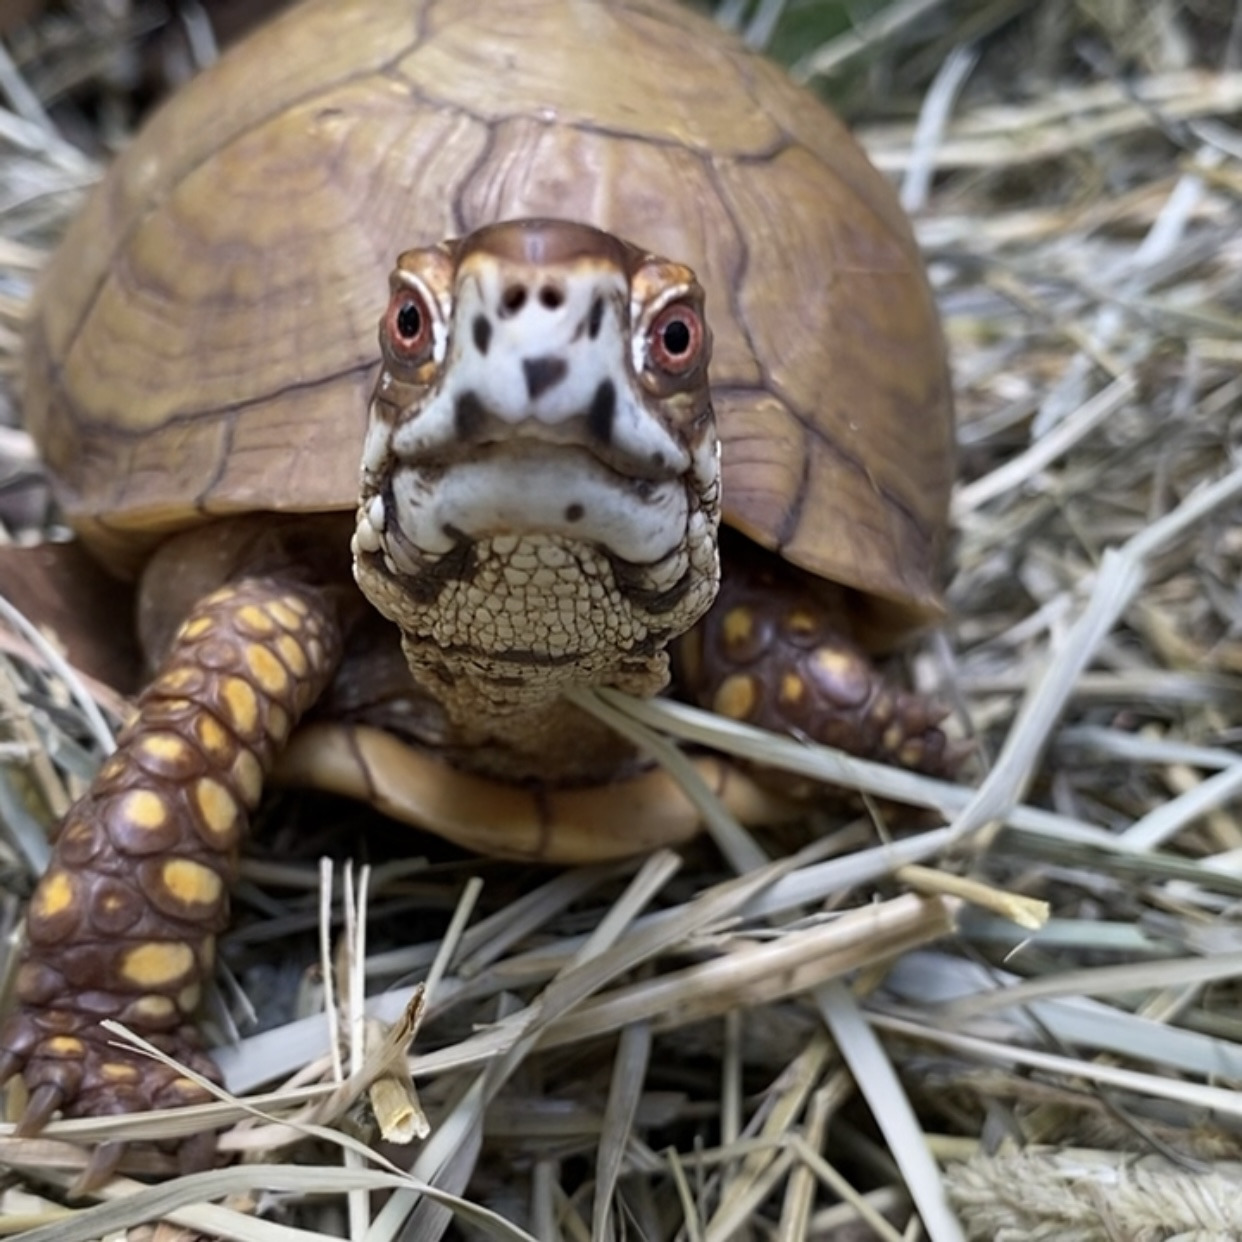 box turtle sitting on hay